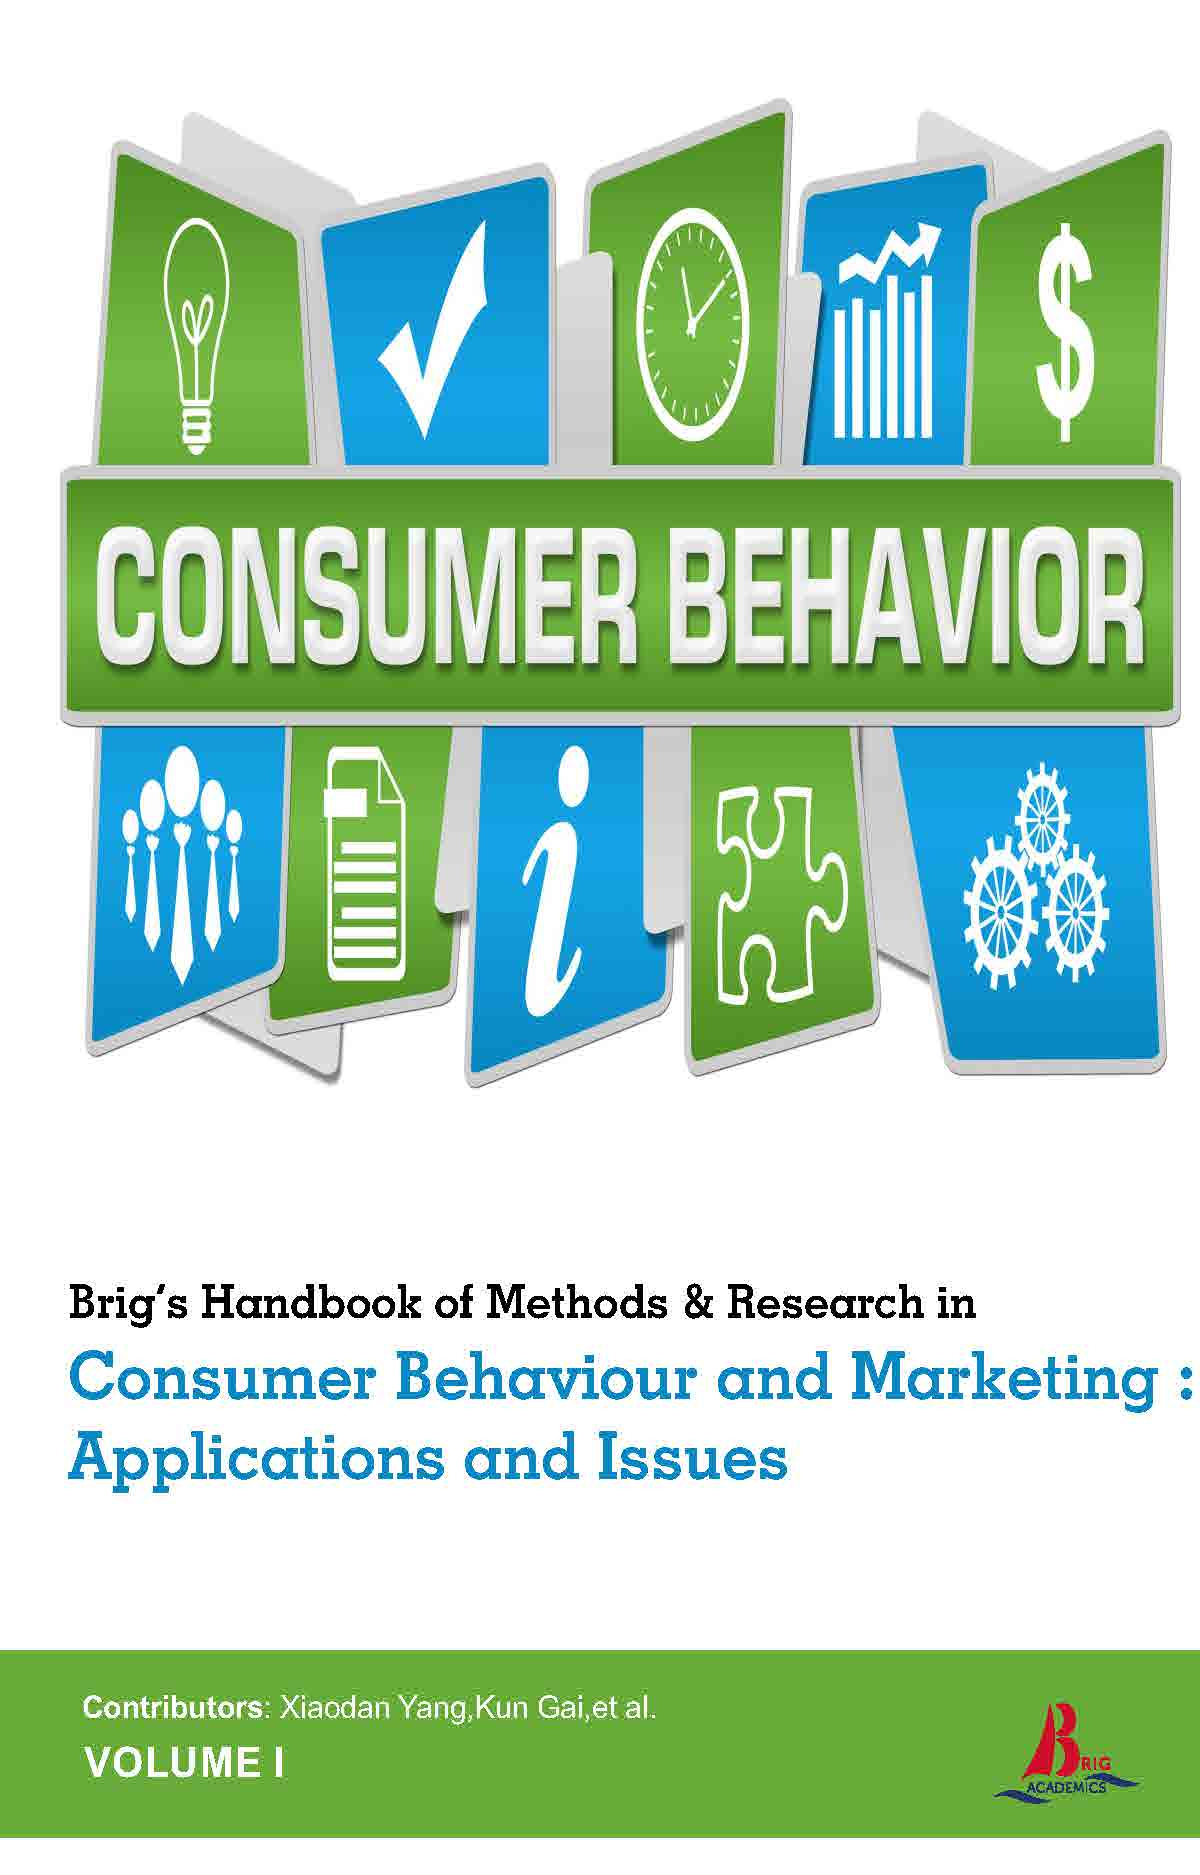 Brig's Handbook of Methods & Research in Consumer Behaviour and Marketing : Applications and Issues (2 Volumes)